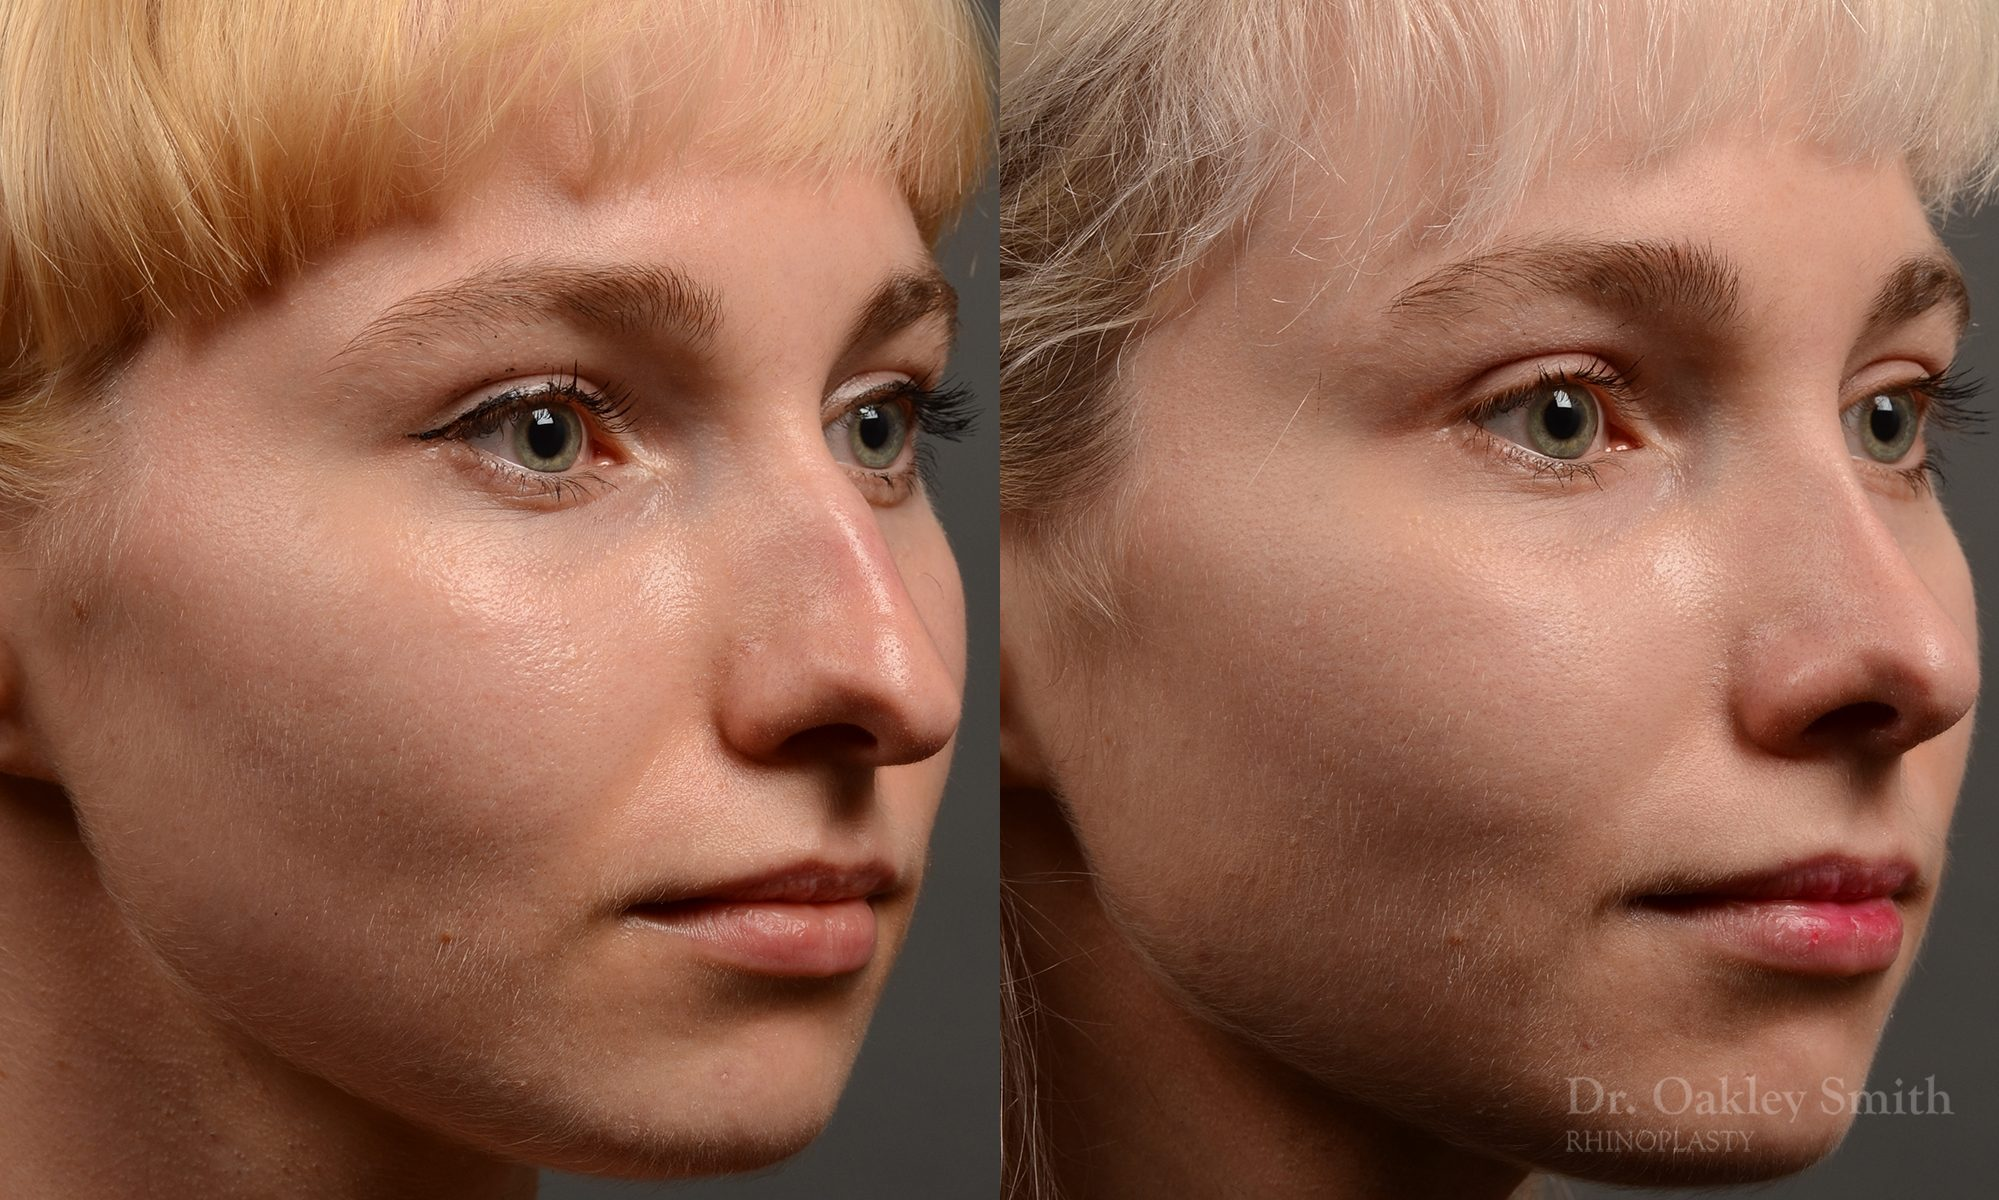 398 - Expert Rhinoplasty nose job surgery to reduce the size of this womans nose.